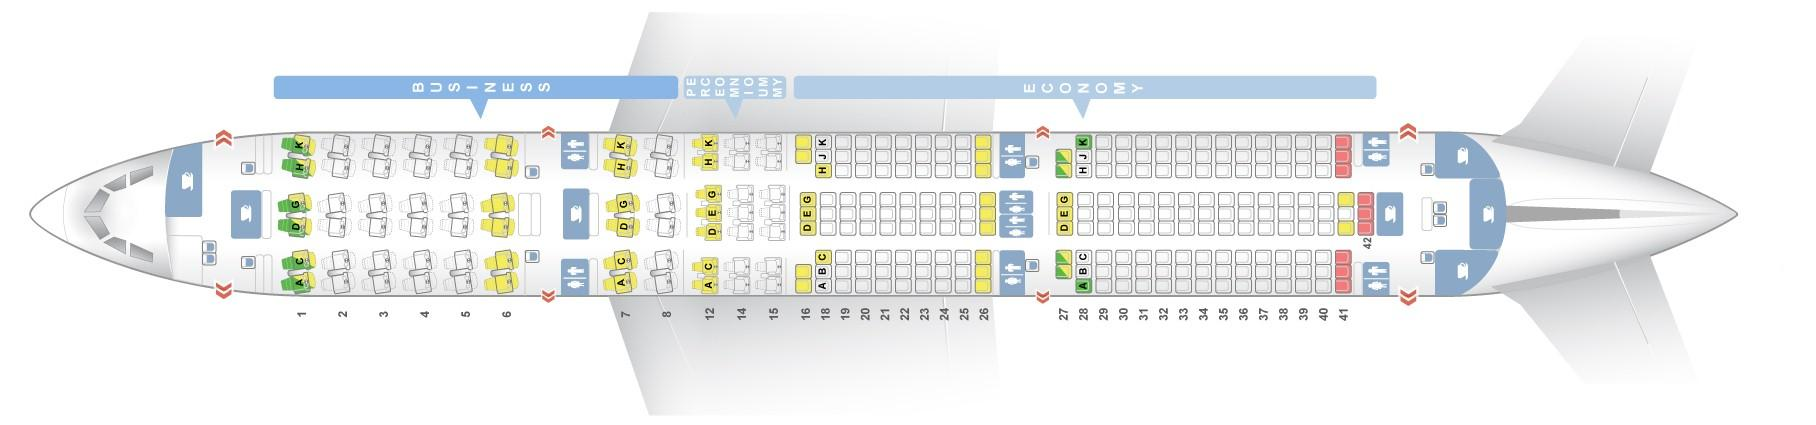 "Seat map Airbus A350-900 ""Lufthansa"". Best seats in the plane"